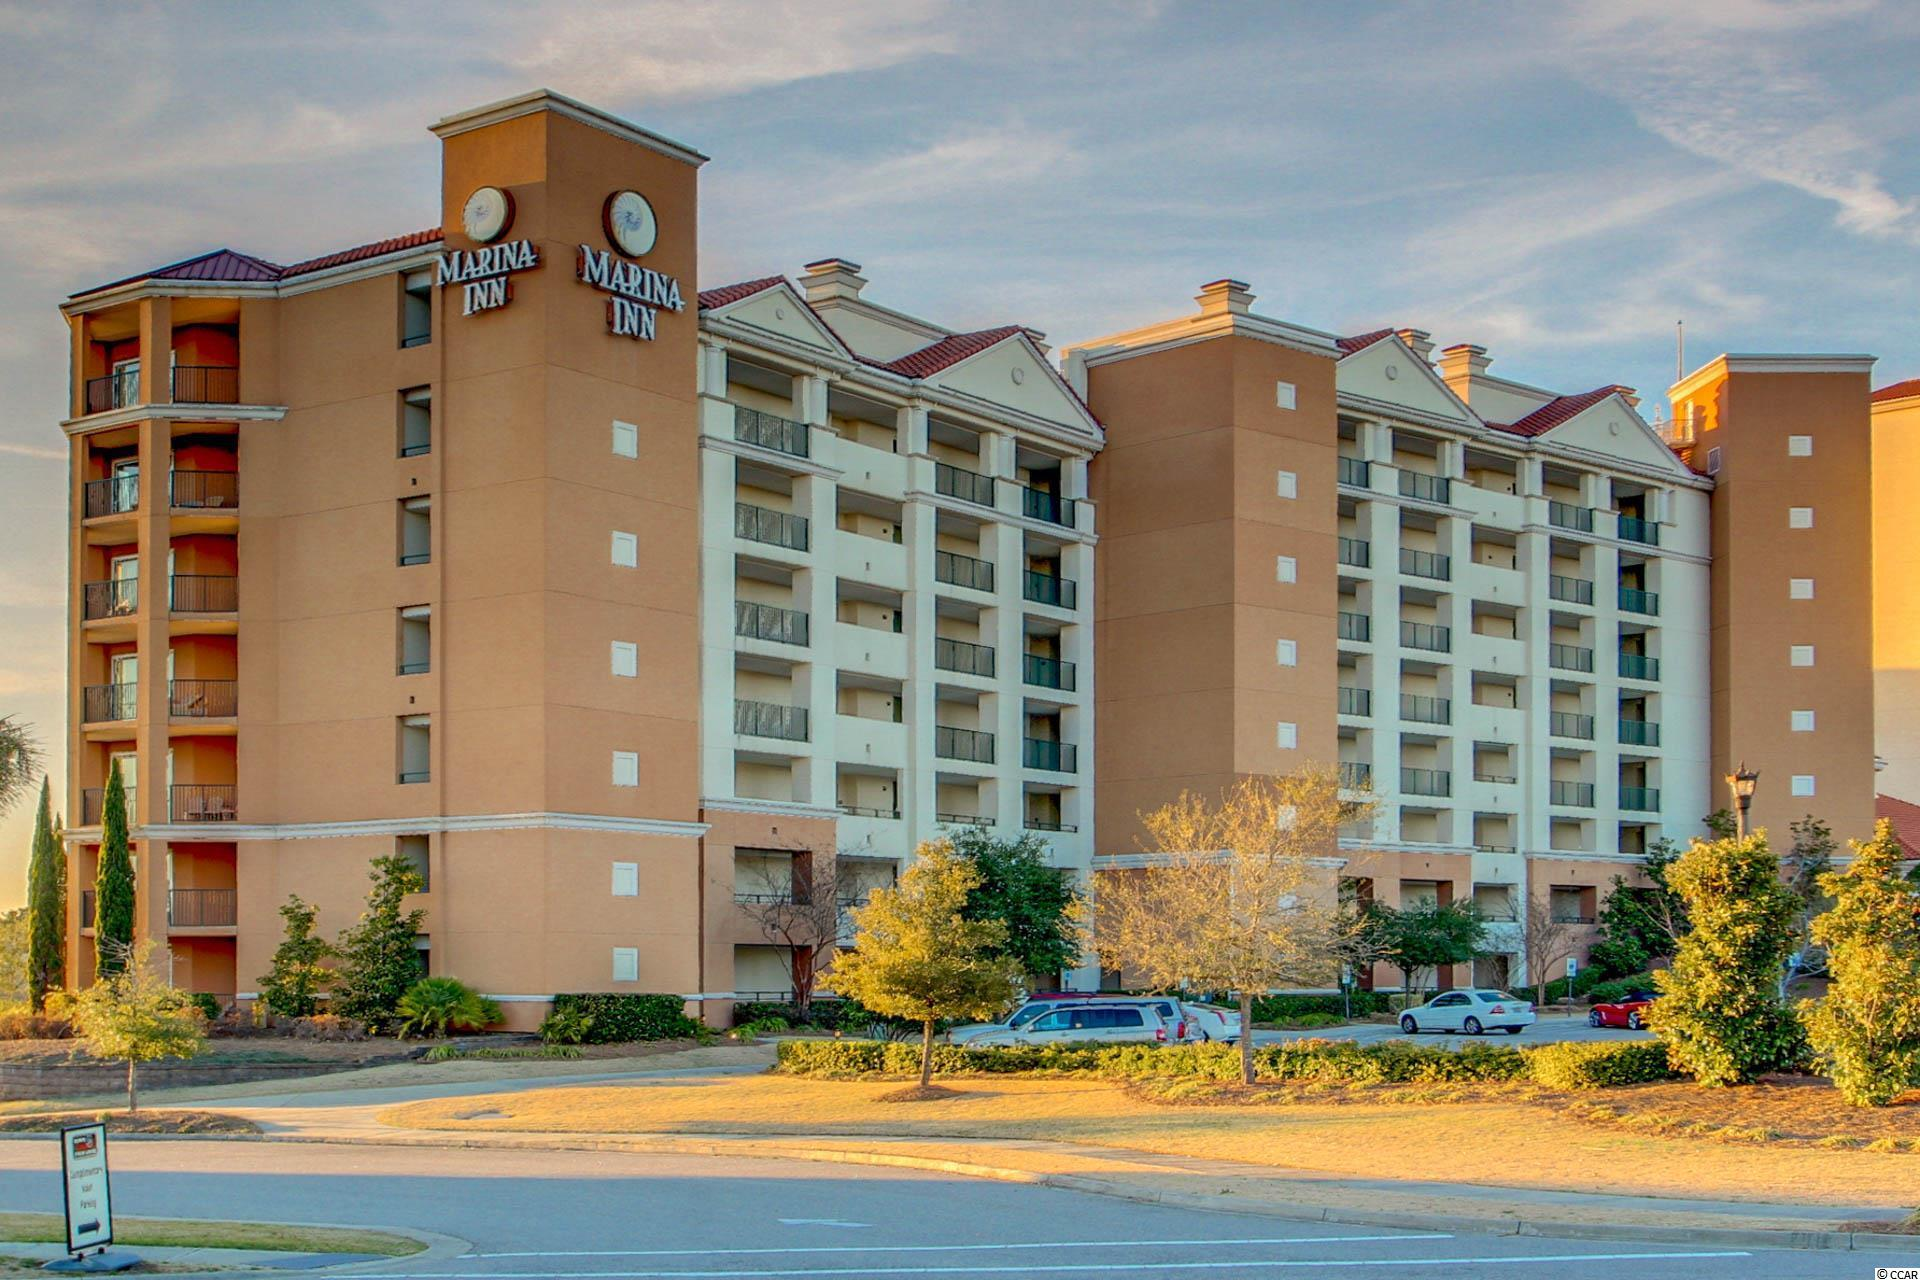 Marina Inn at Grande Dunes Eff/1 BA condo with beautiful waterway views.  Condo is nicely decorated and appointed. A great investment! Property offers indoor/outdoor pools, fitness center and more!